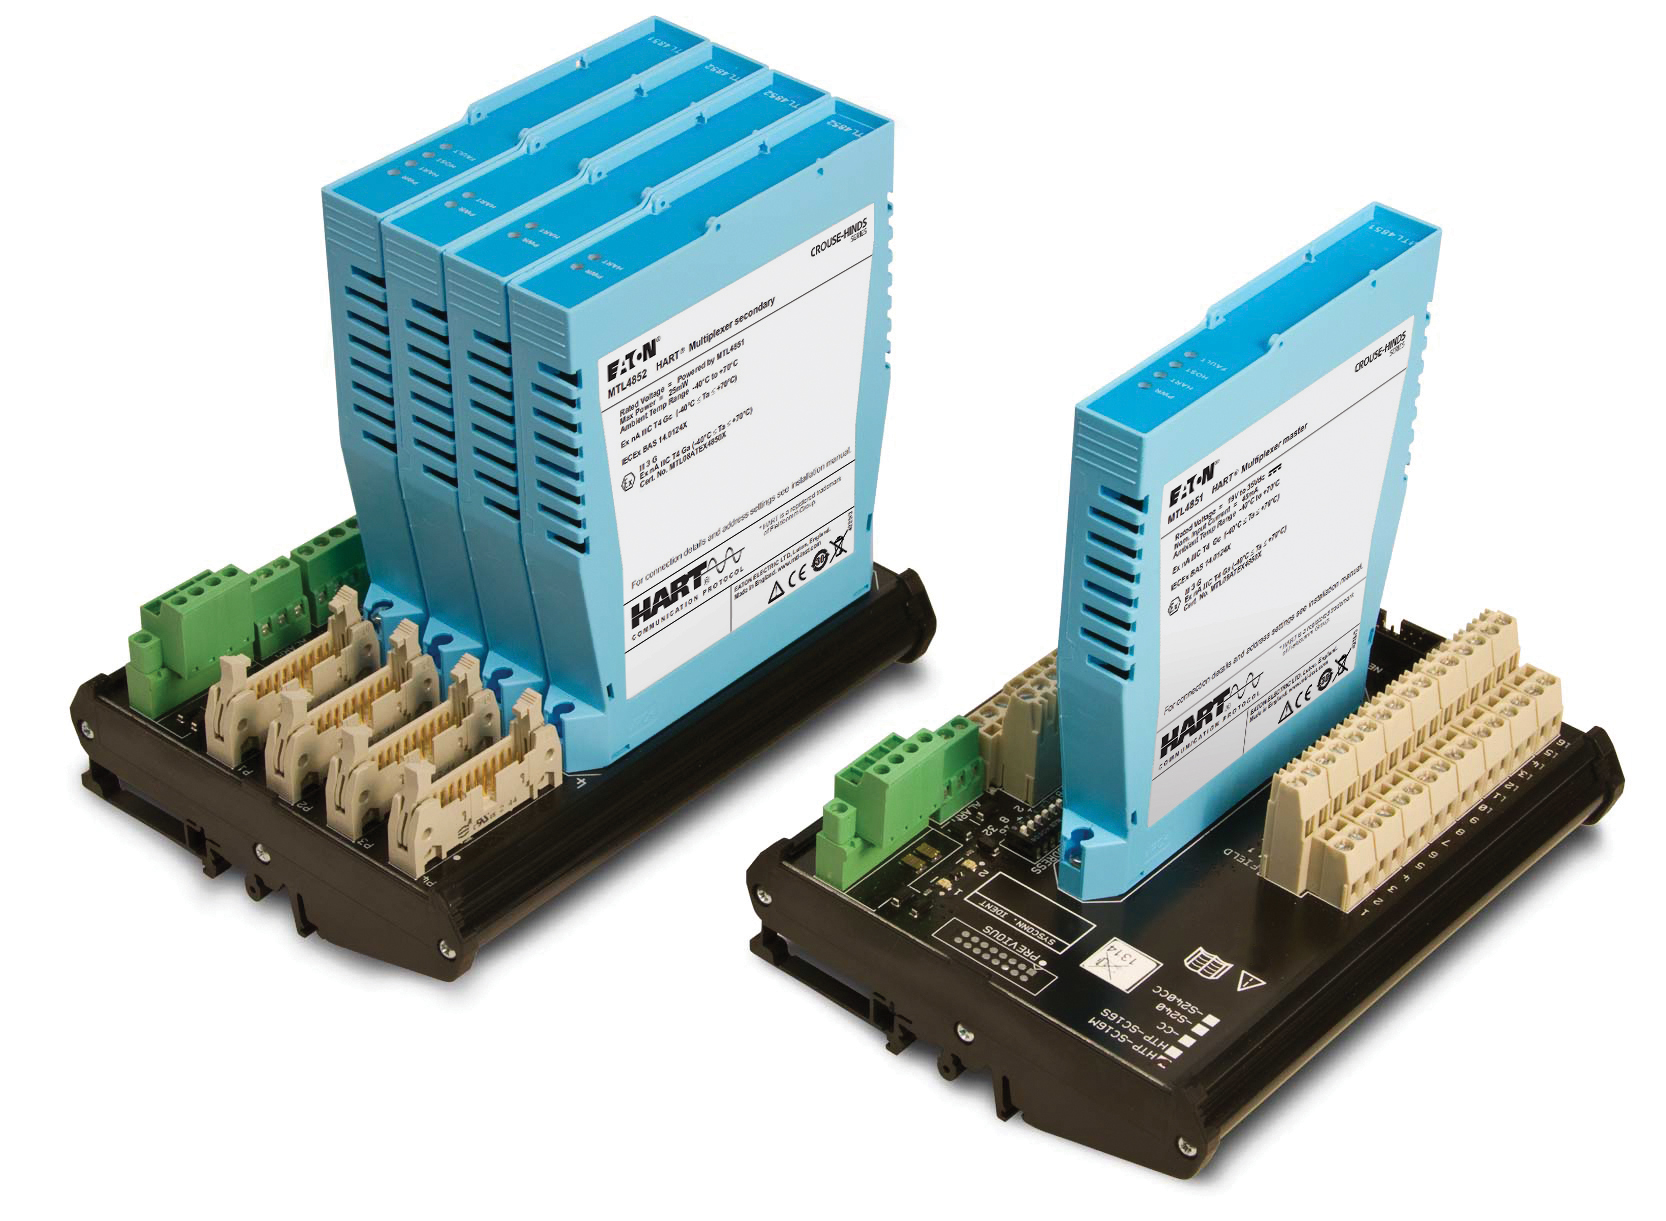 Eaton MTL » Controlling, operating and protecting assets in harsh